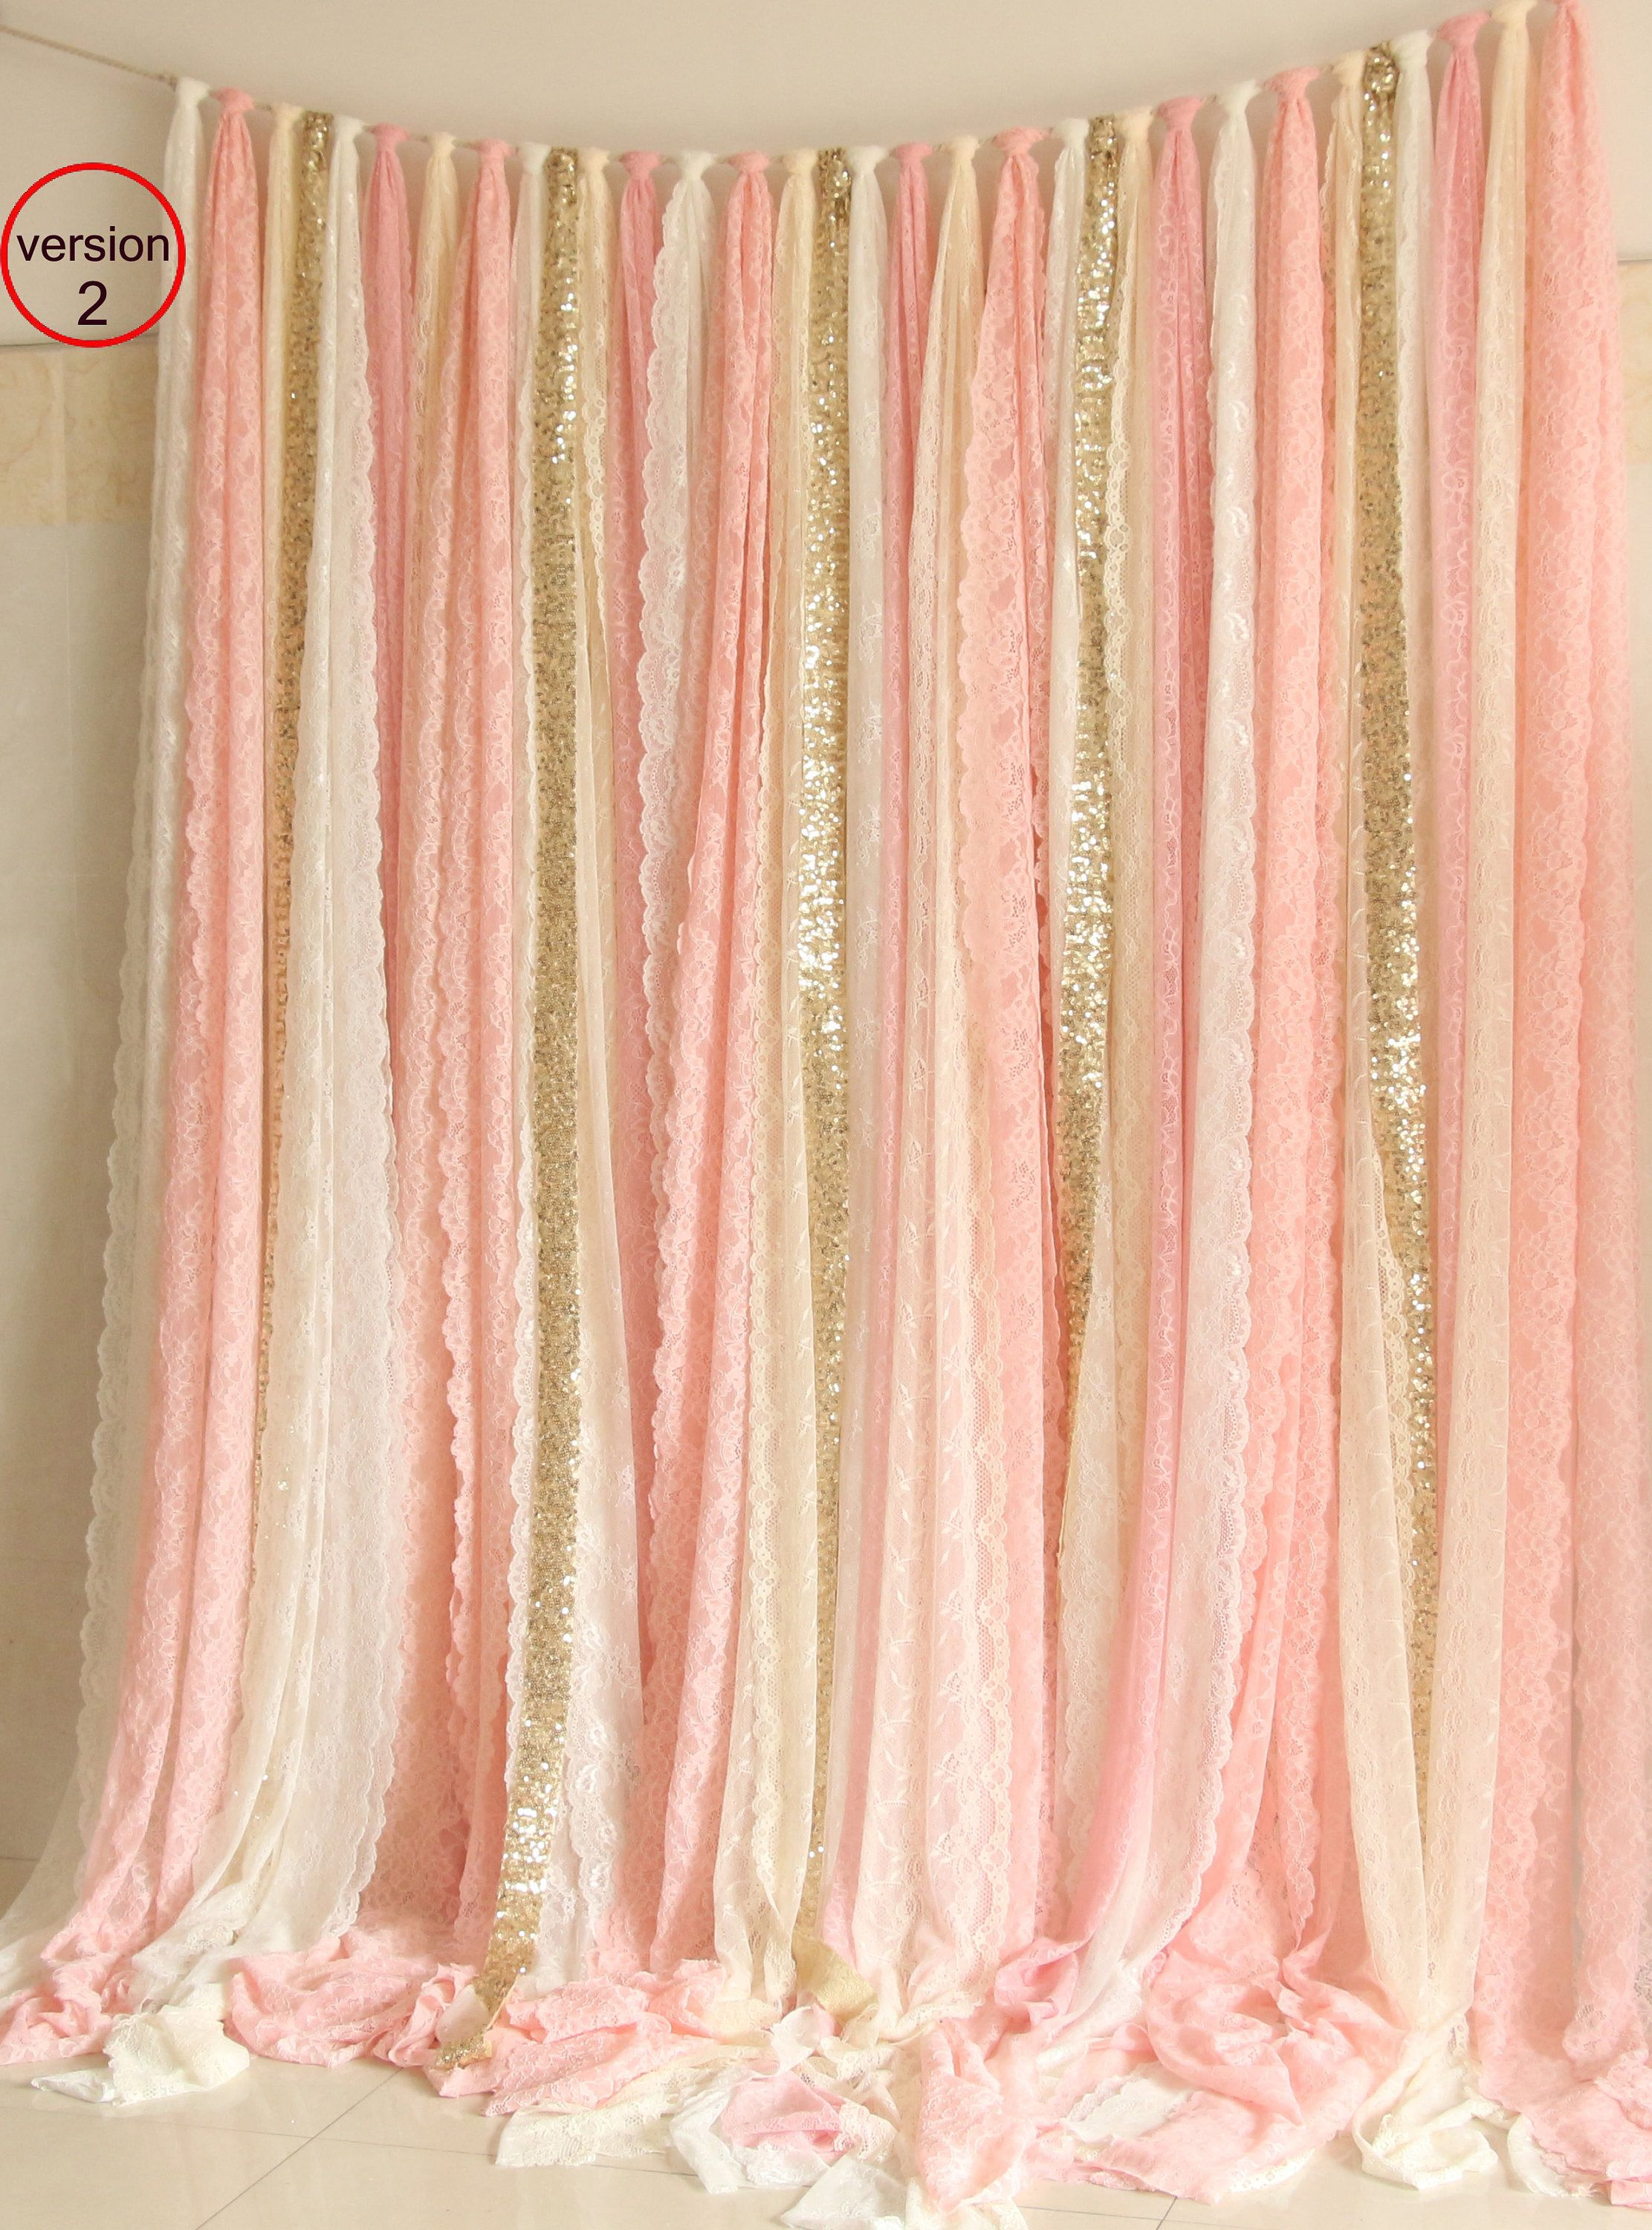 Wedding decorations stage backdrops october 2018 Blush pink white Lace fabric Gold Sparkle photobooth backdrop